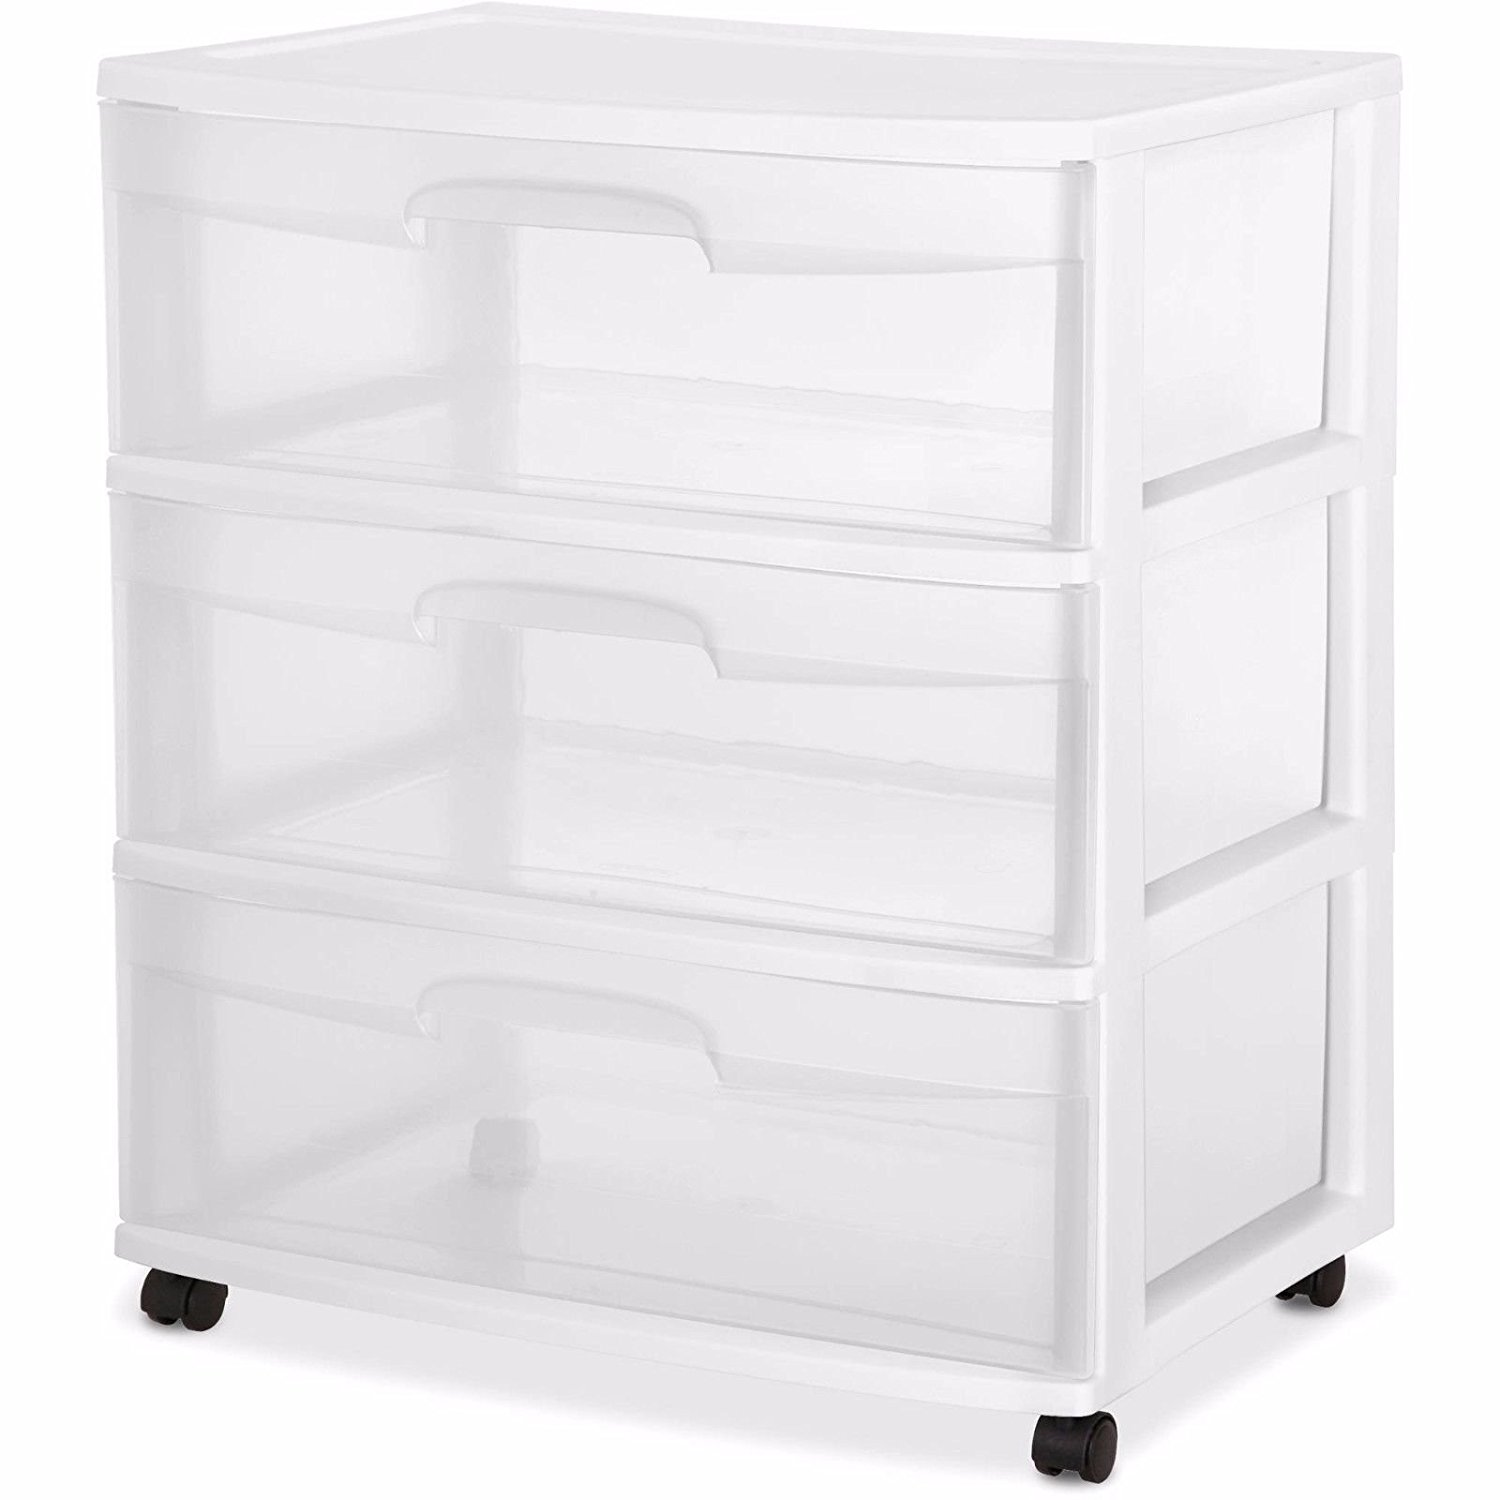 for wheels cubes cart drawers tools maidmax with black brakes drawer organizer clothes papers product rolling collapsible storage and